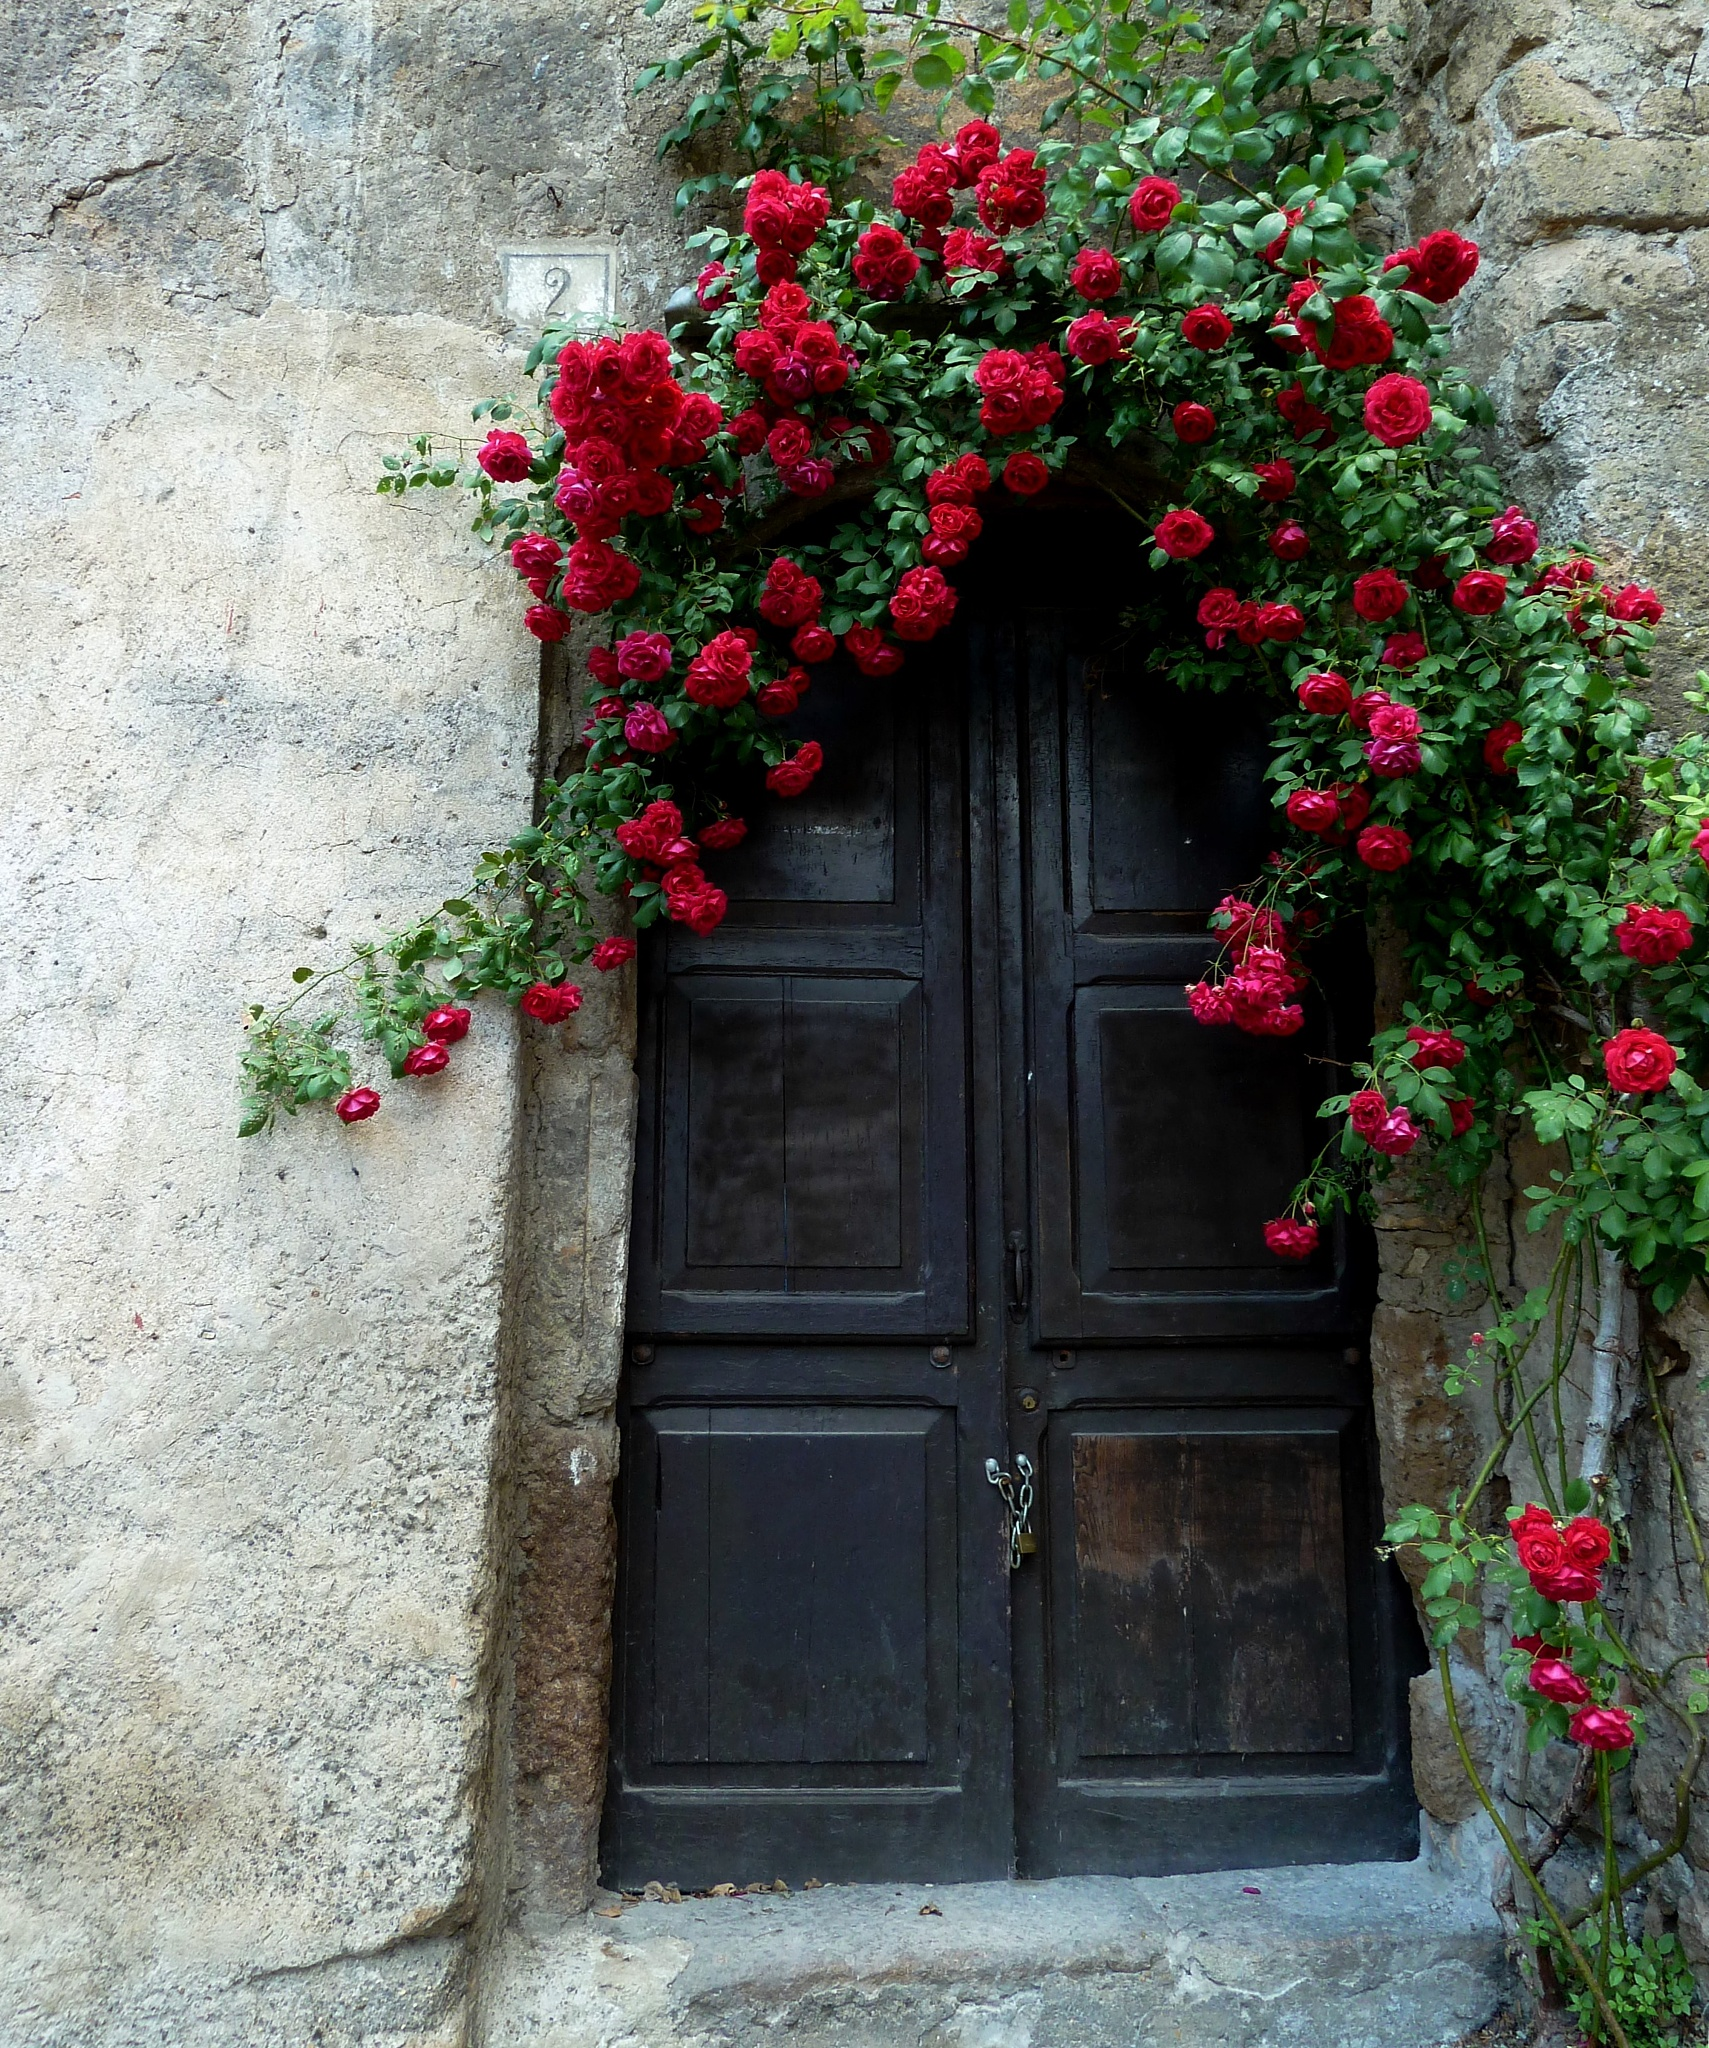 Around the borgo. An embrace of roses at No. 2. by Anton Agalbato